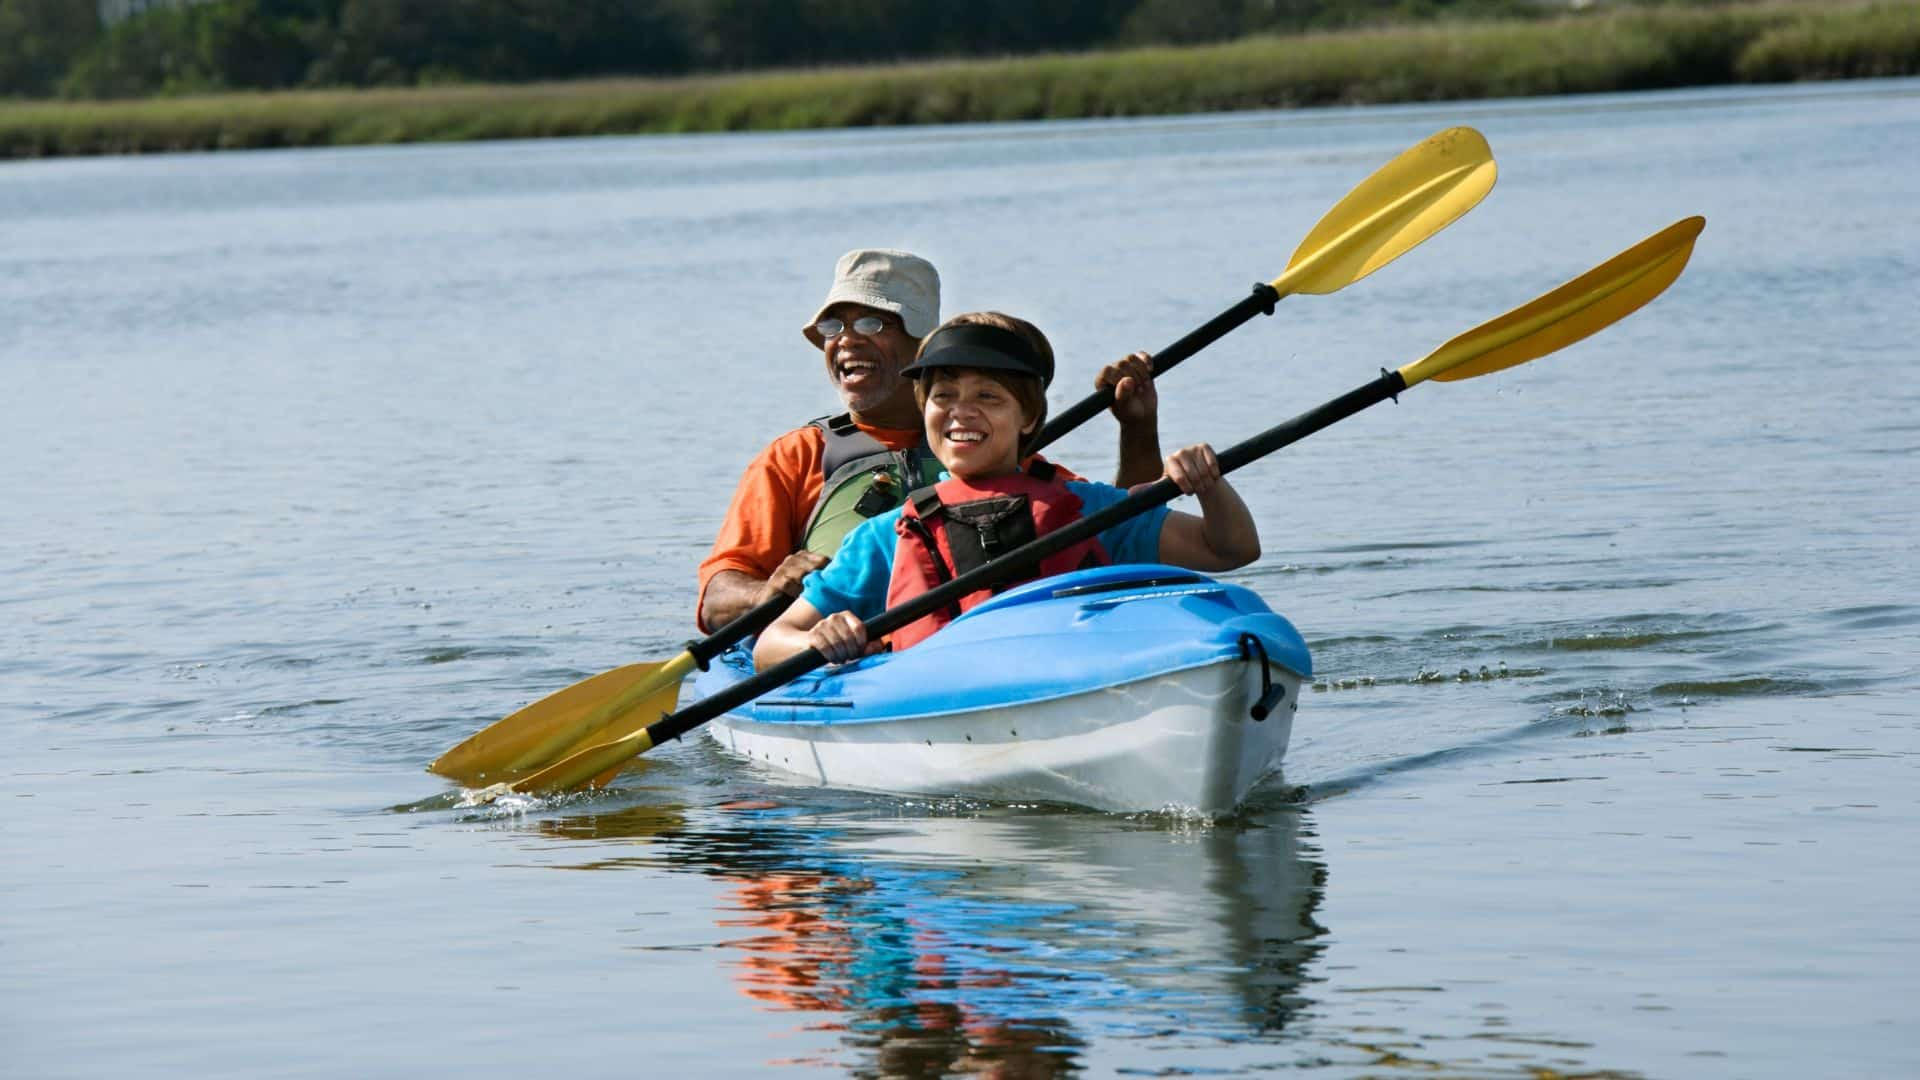 how safe is kayaking for beginners